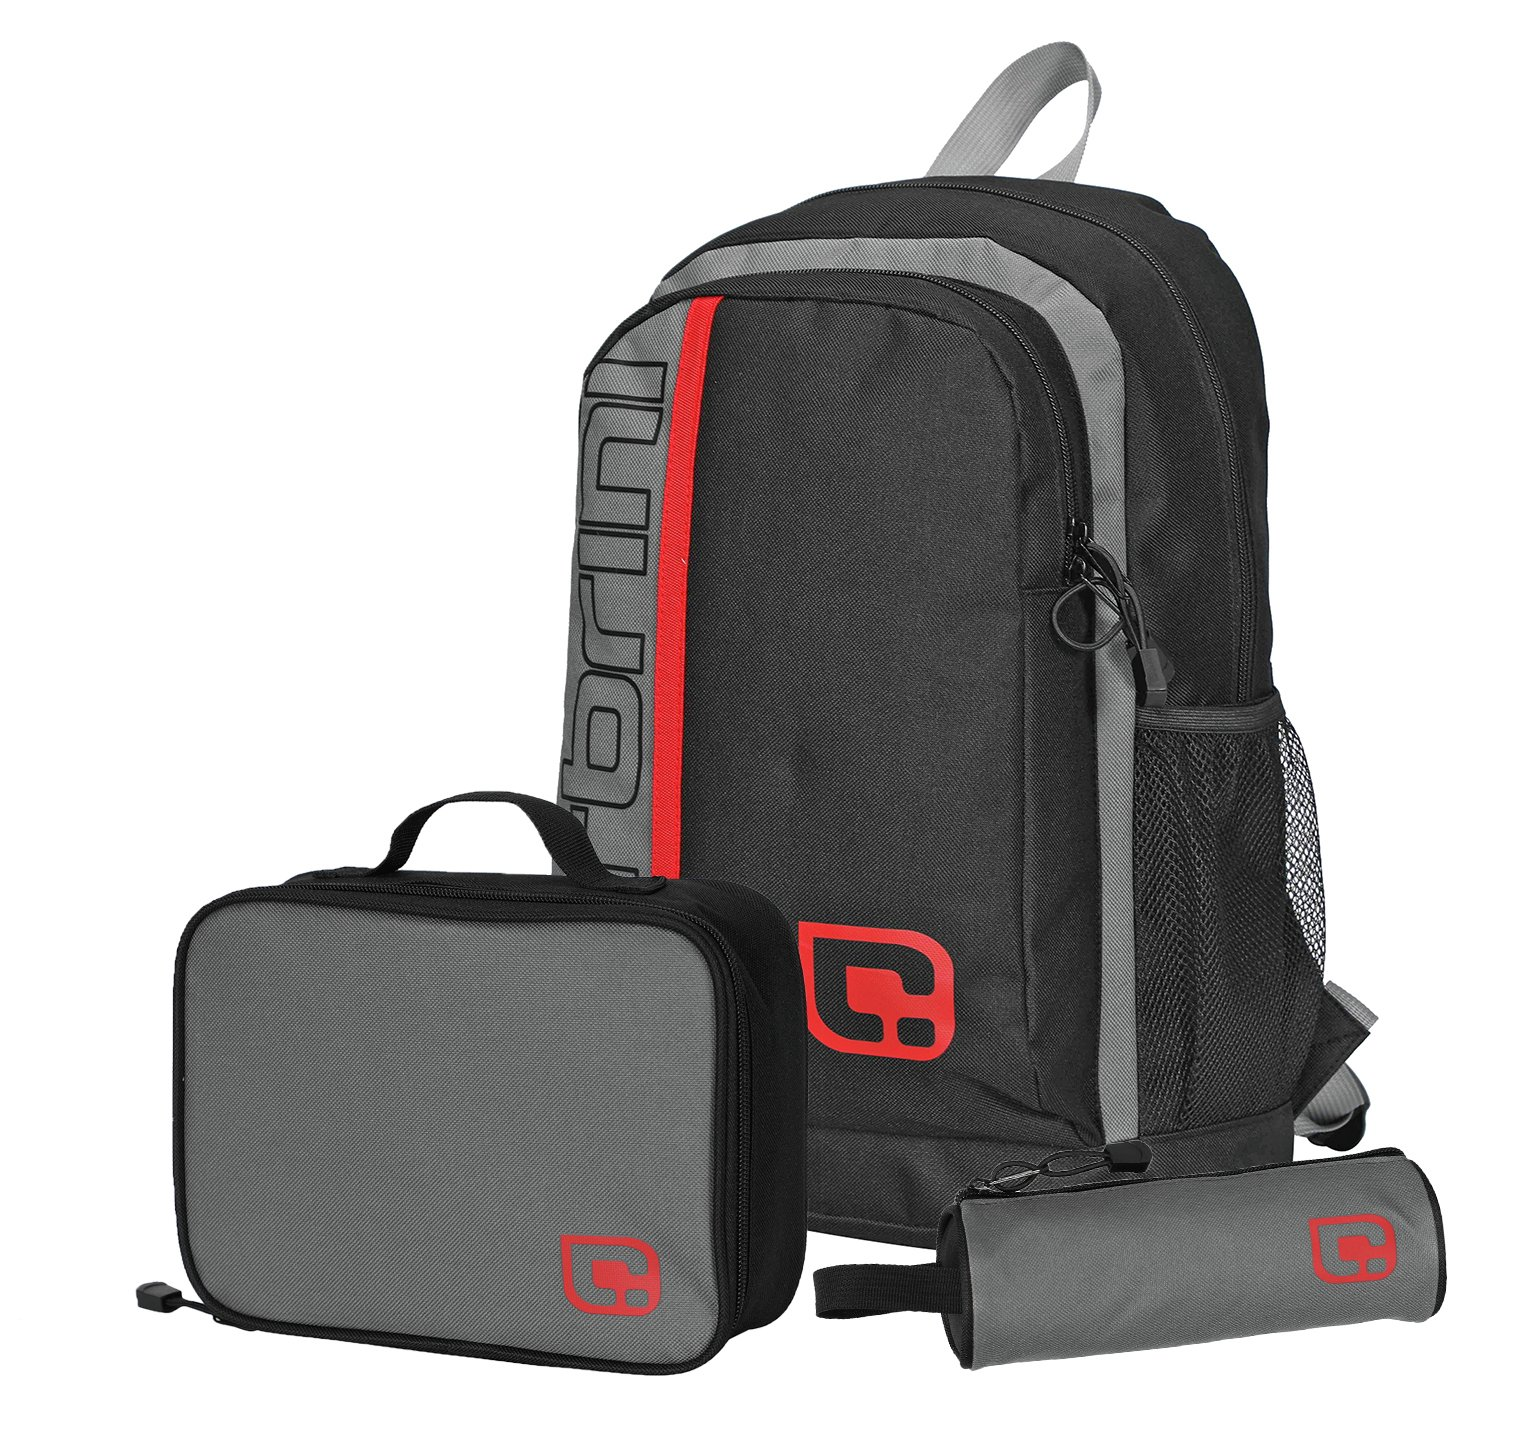 Carbrini Hacker 3 in 1 19L Backpack - Black and Grey